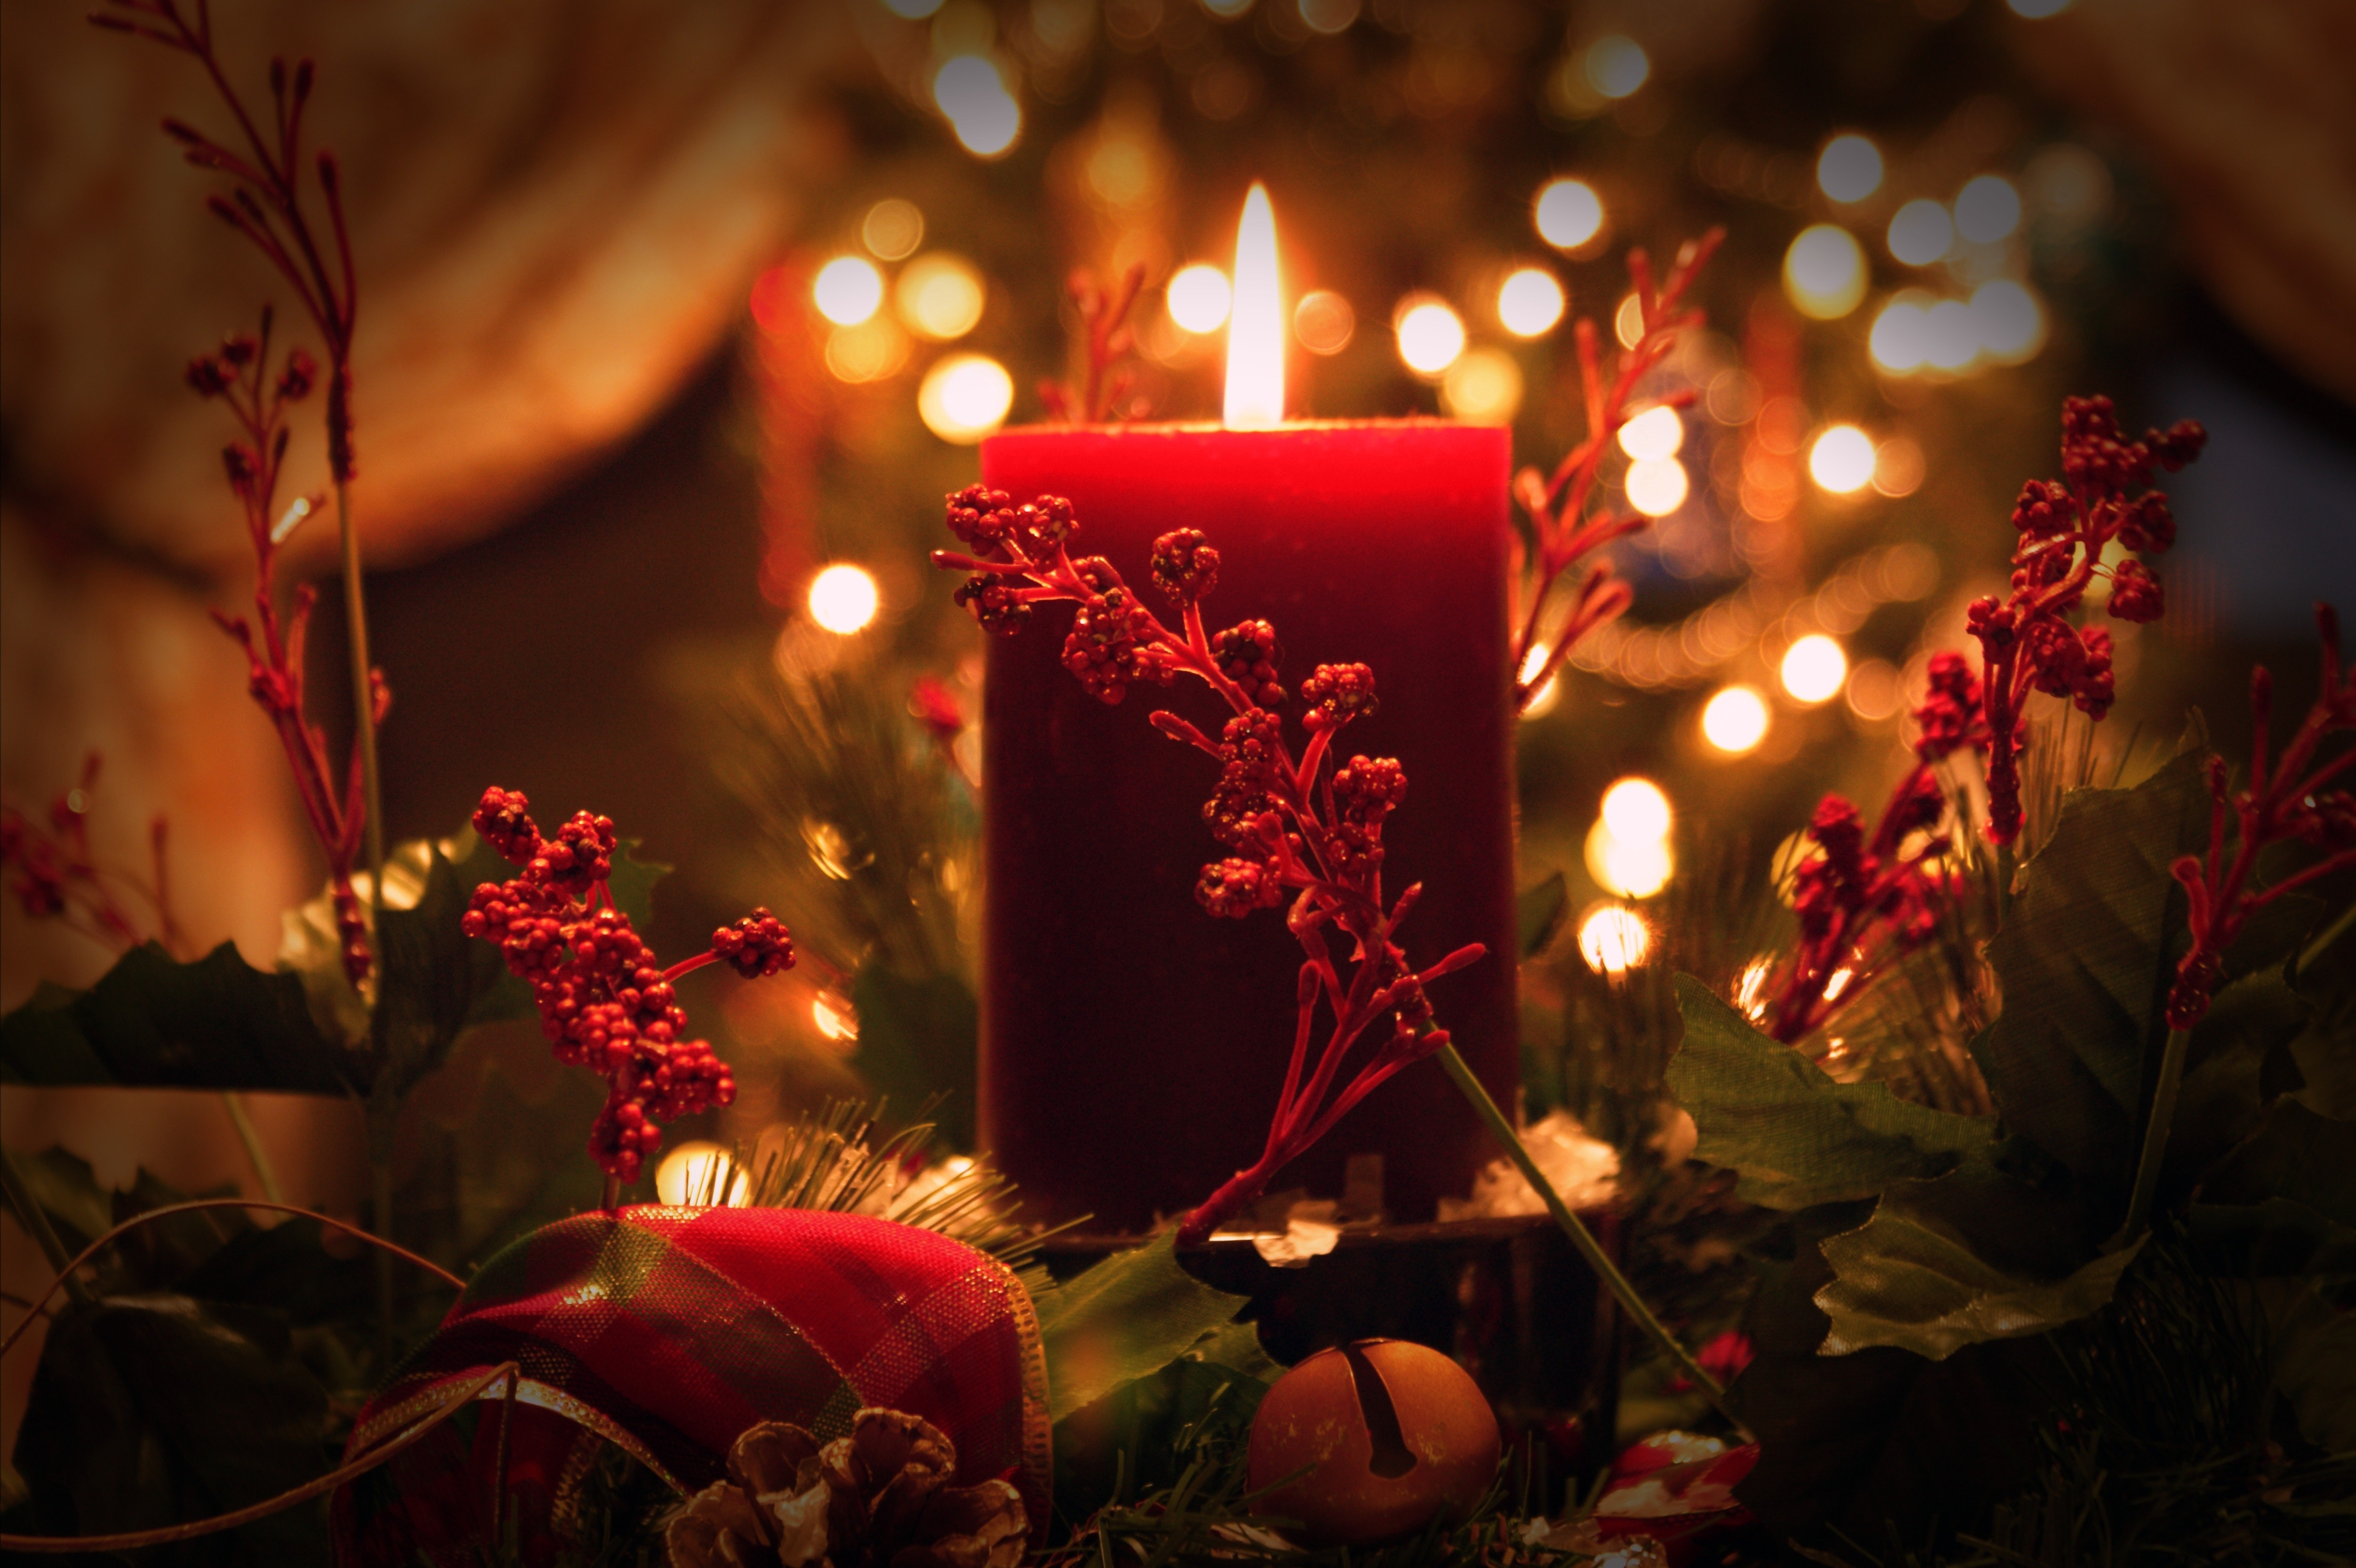 Join us for the Christmas Eve Candle Light Service